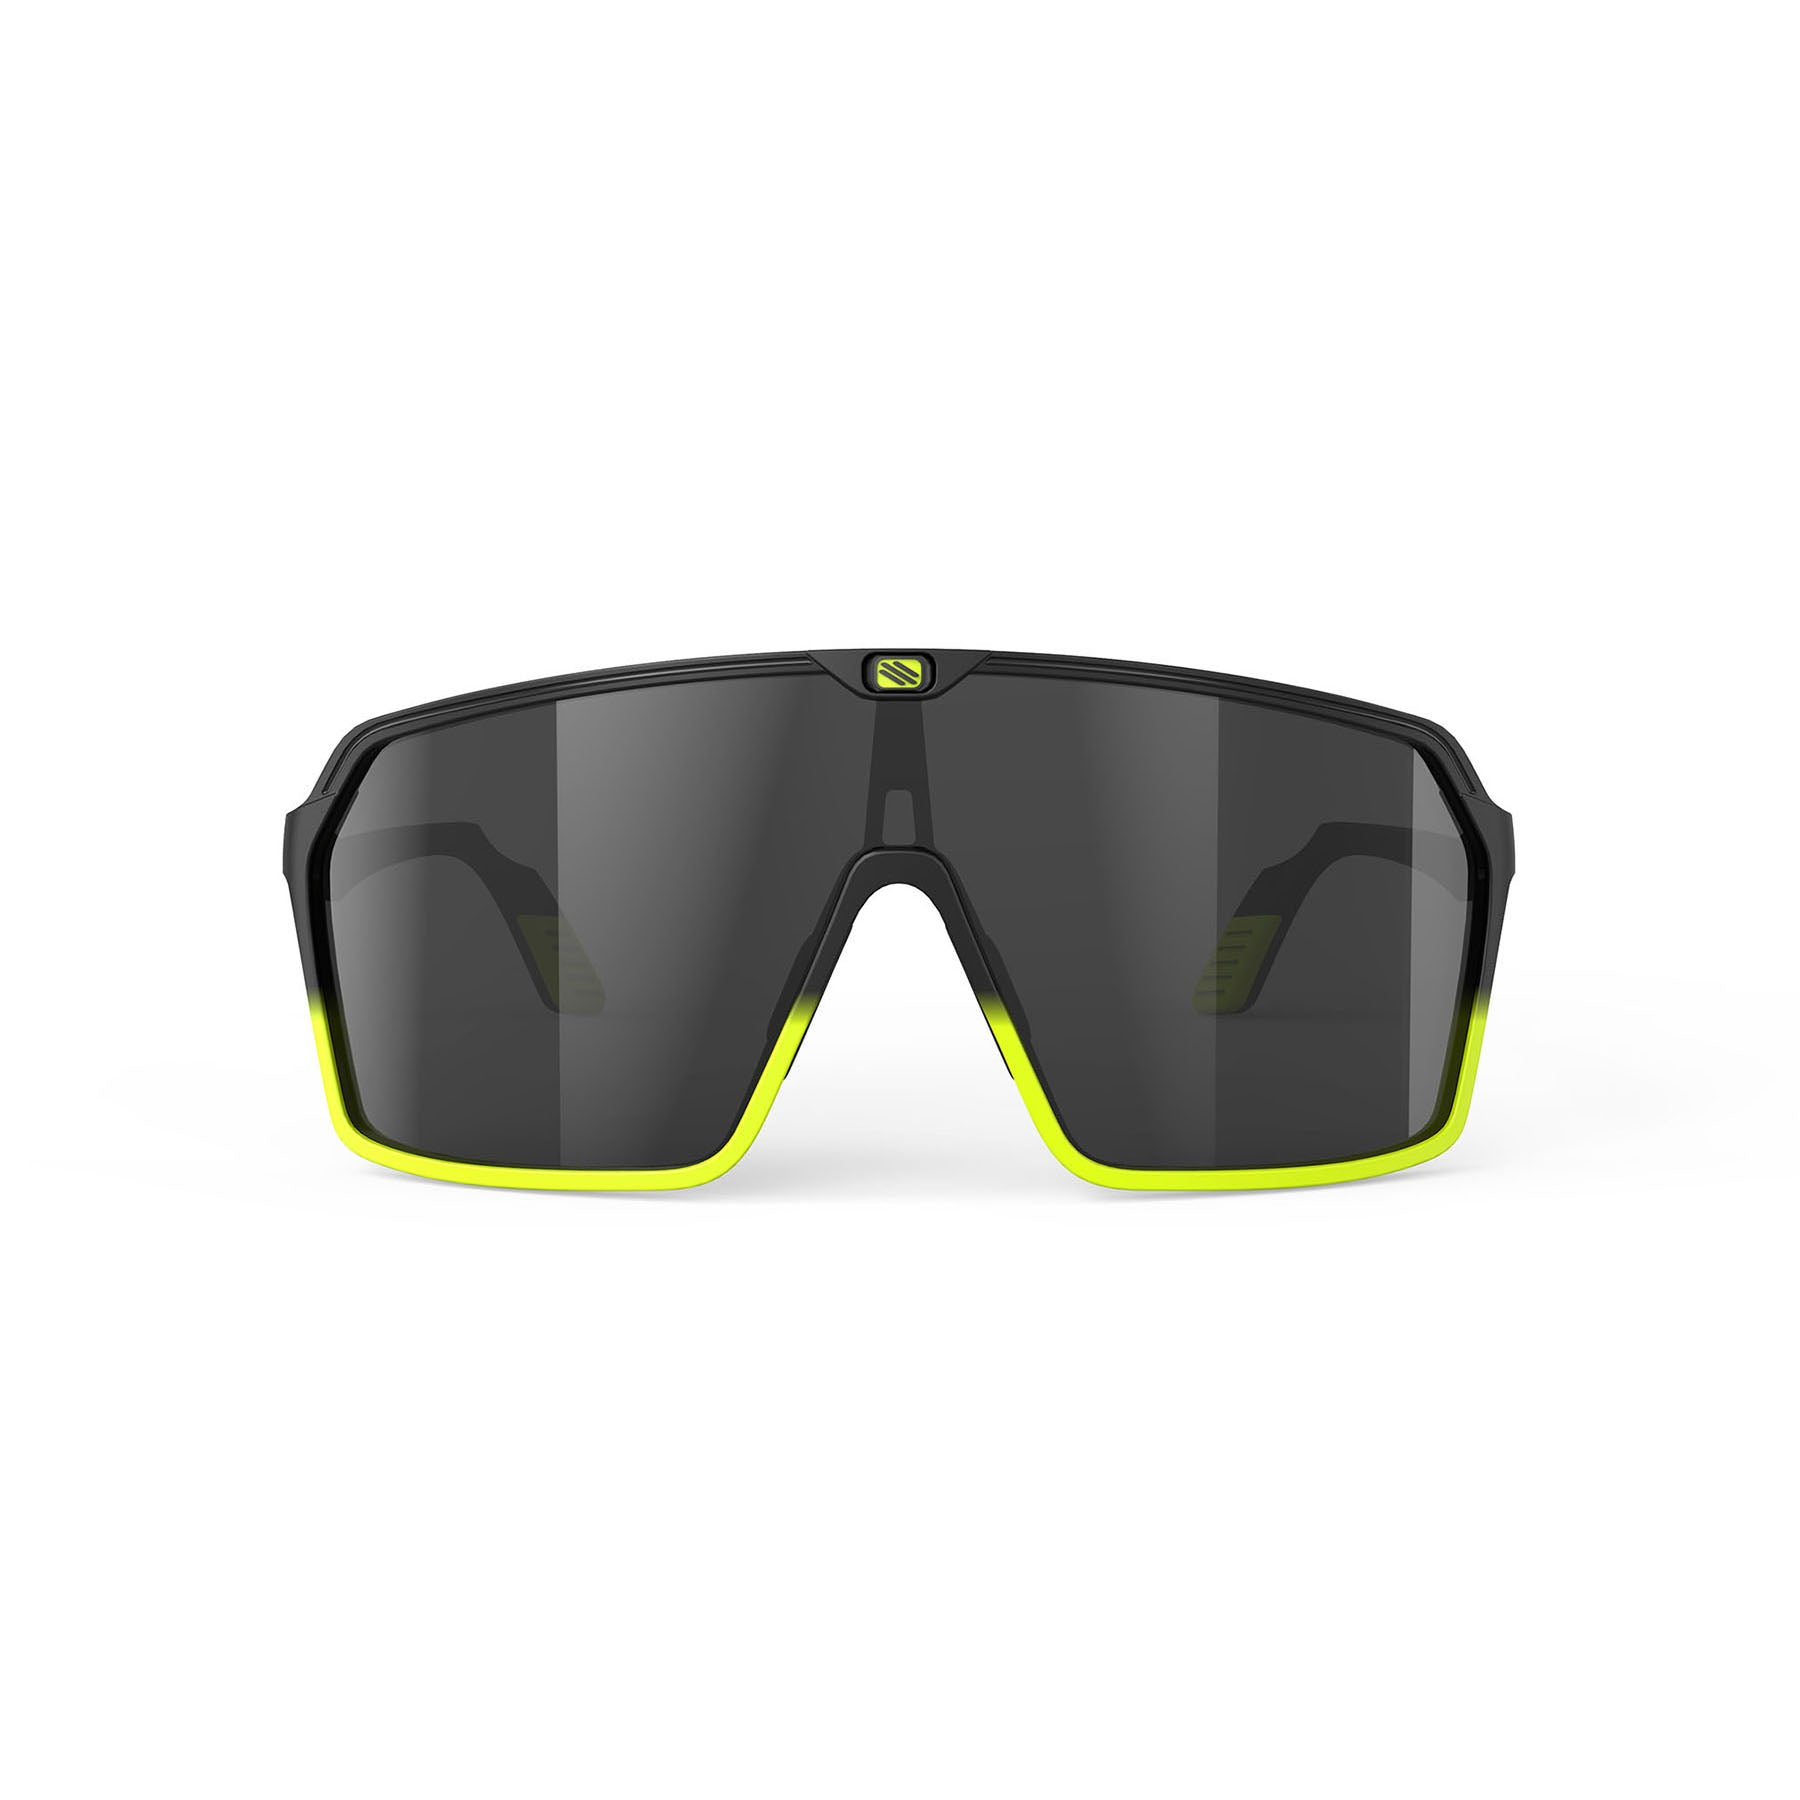 Rudy Project - Spinshield - frame color: Matte Black Yellow Fluo - lens color: Smoke Black - photo angle: Front View Variant Hover Image